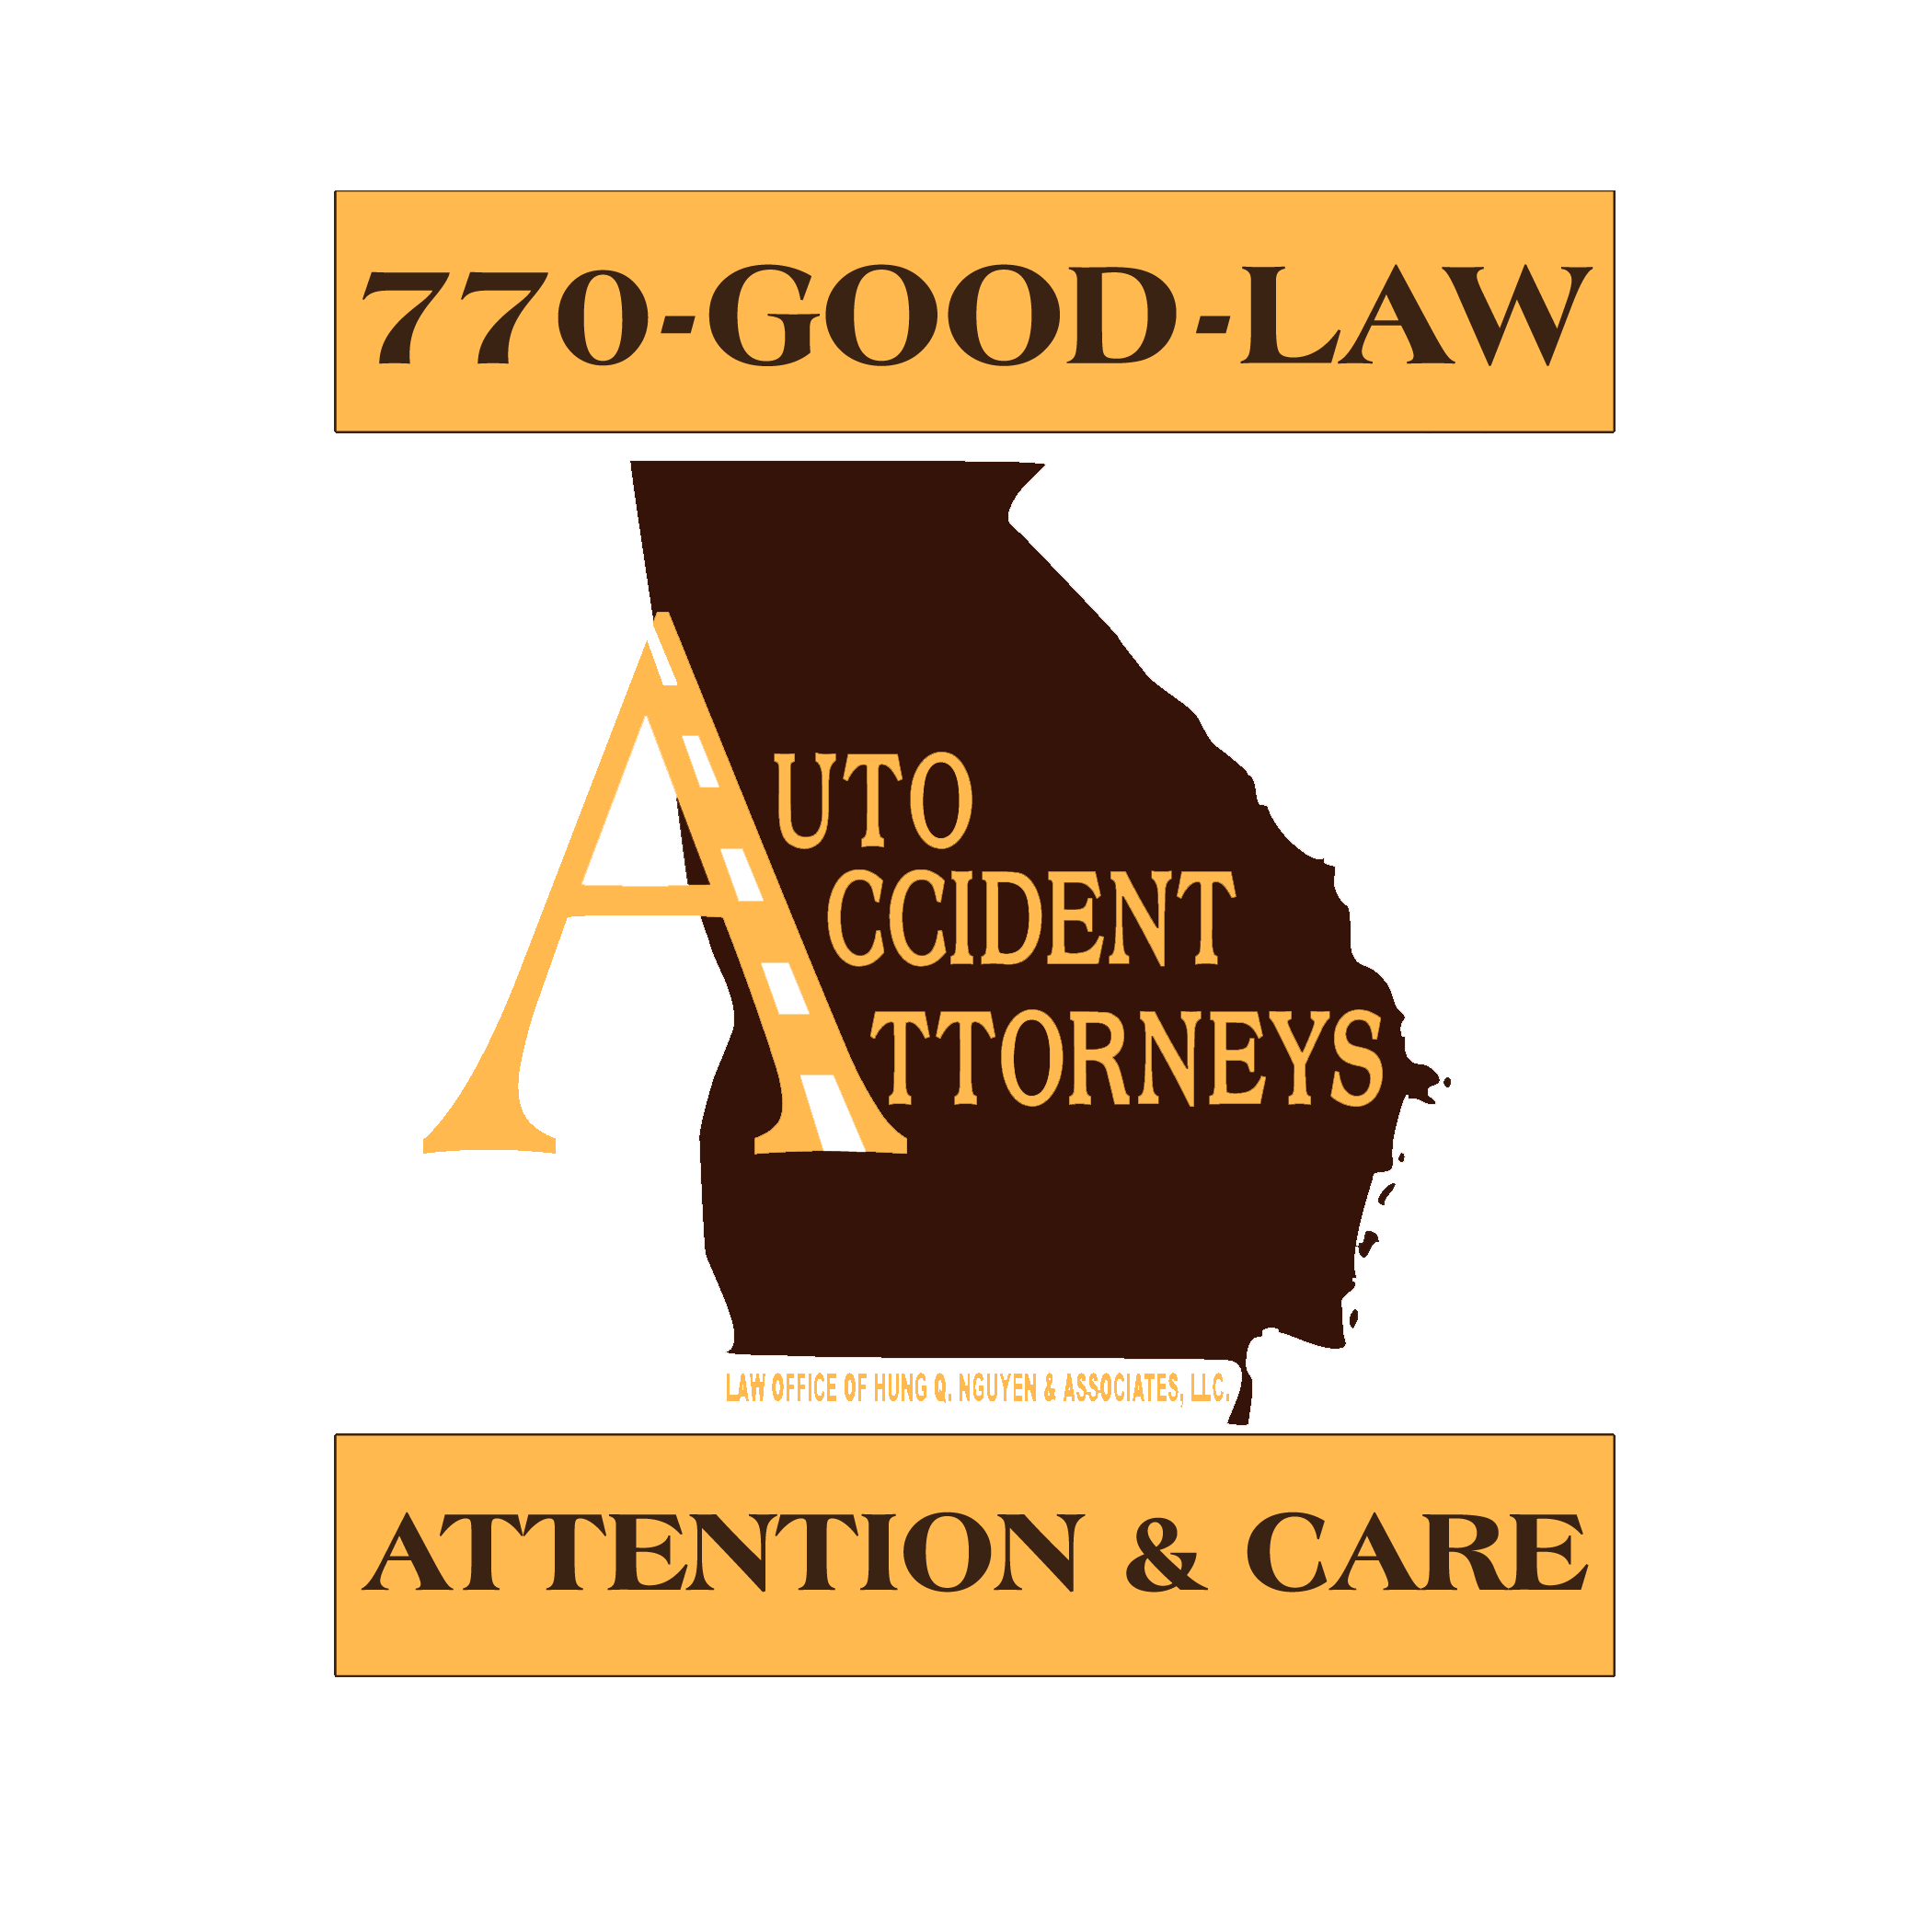 770GOODLAW, H.Q. (Alex) Nguyen Law Firm, LLC Profile Picture